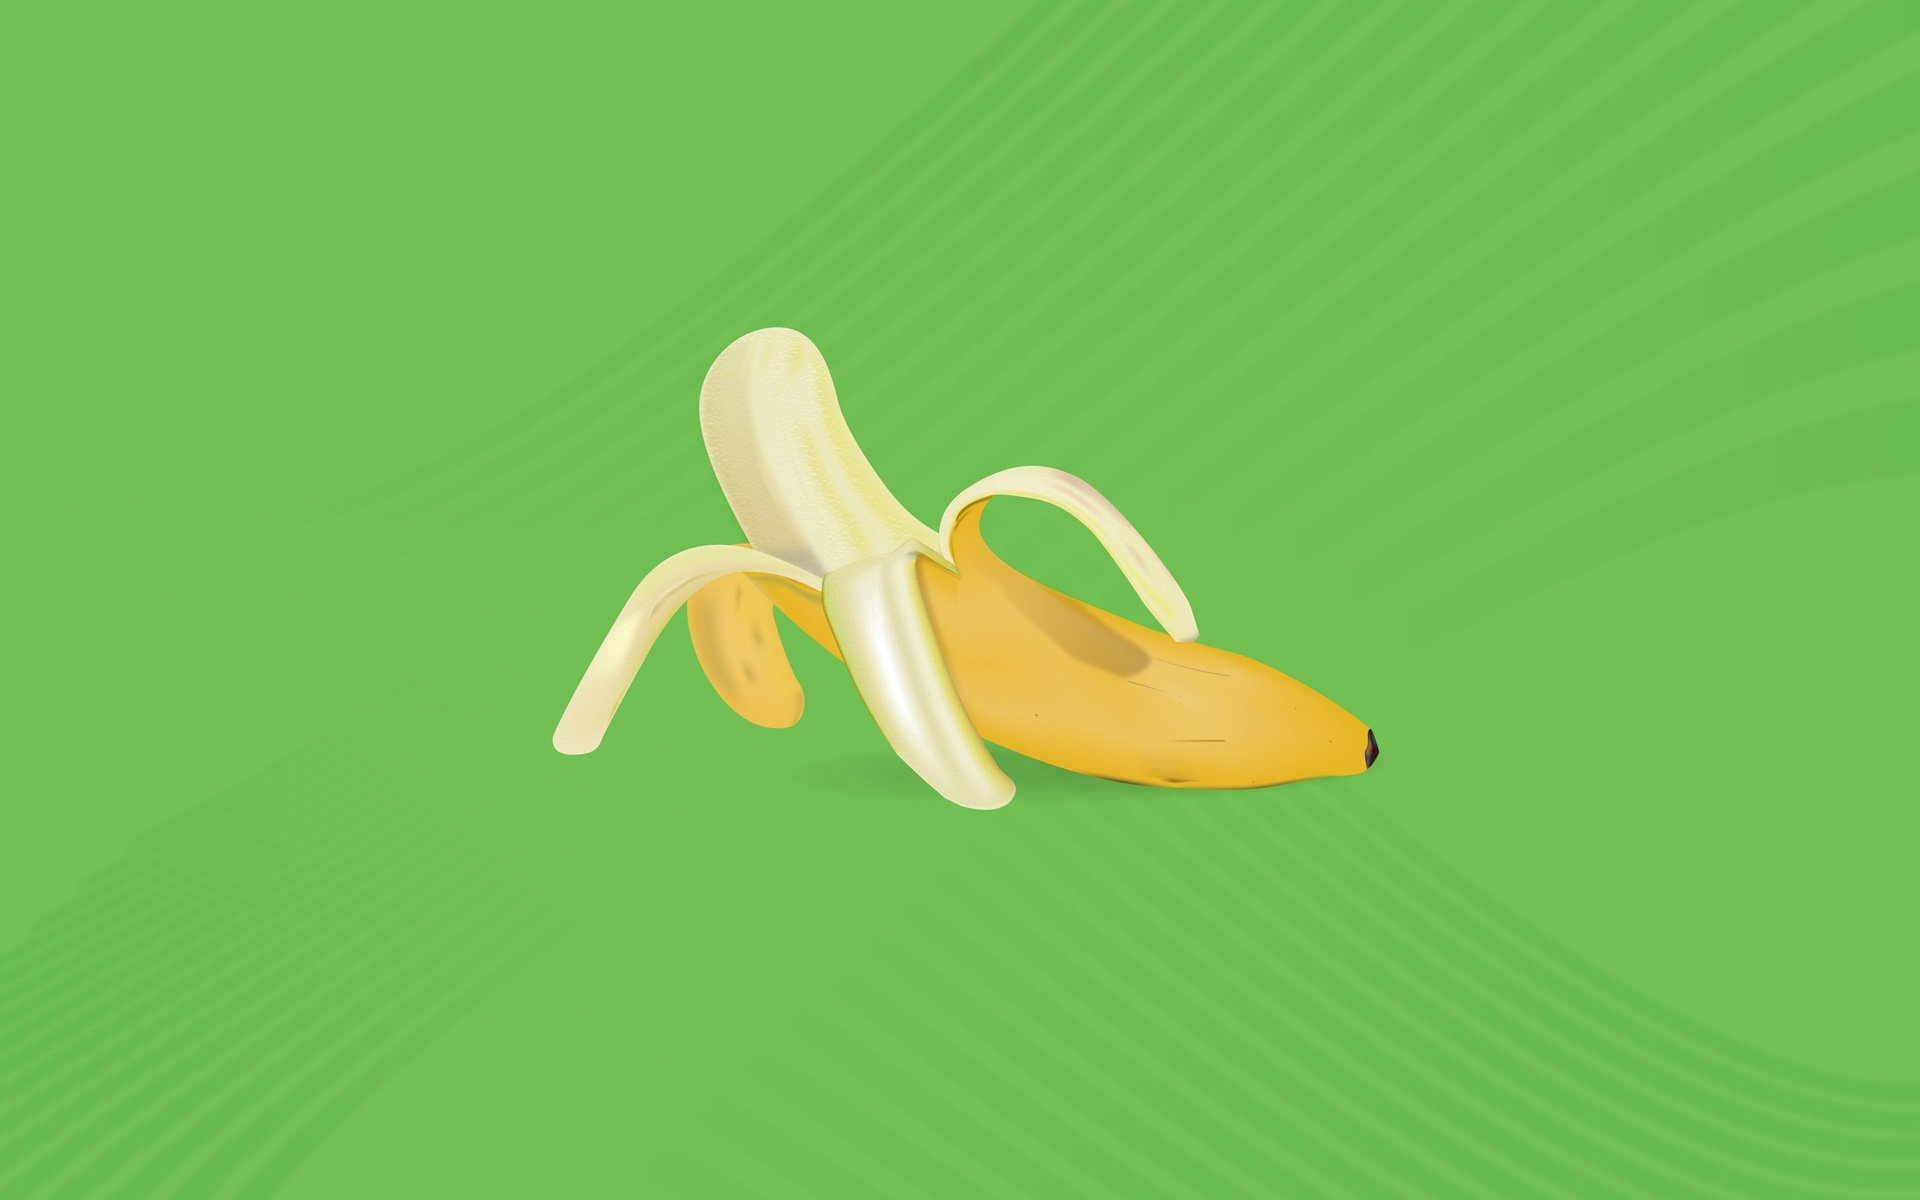 Free download Banana wallpaper ID:463155 hd 1920x1200 for desktop